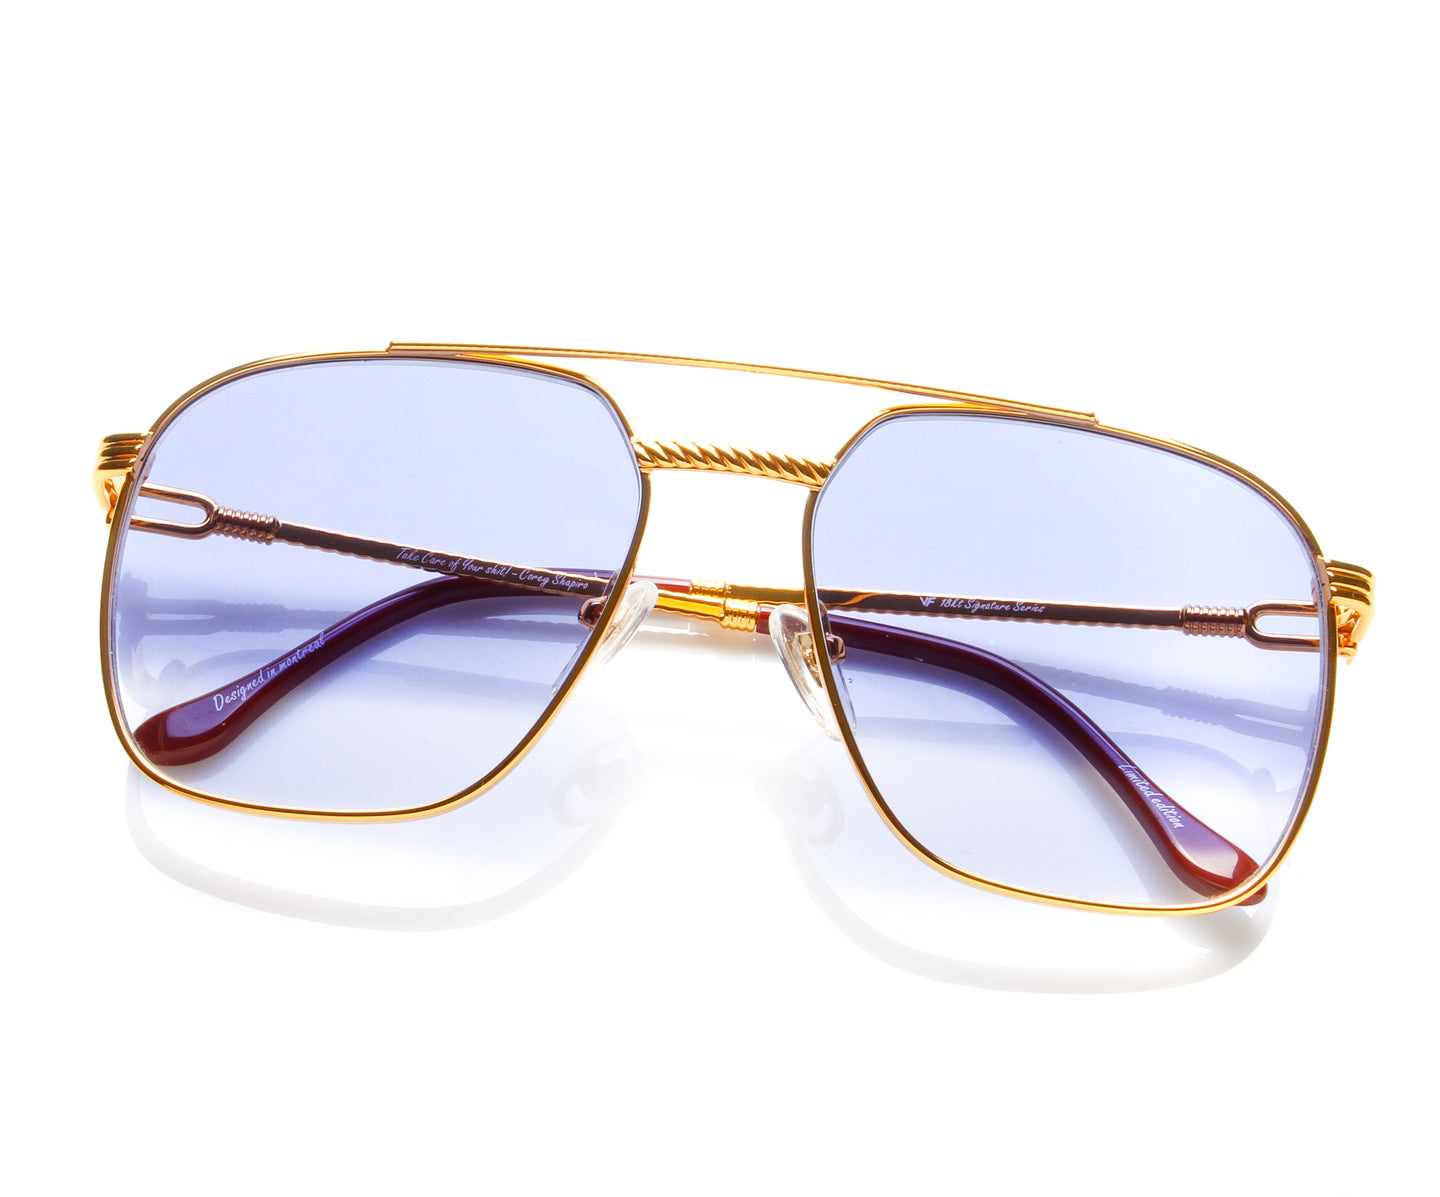 Narcos Masterpiece 18KT Gold Signature Edition (Royal Blue Strip), VF Masterpiece , glasses frames, eyeglasses online, eyeglass frames, mens glasses, womens glasses, buy glasses online, designer eyeglasses, vintage sunglasses, retro sunglasses, vintage glasses, sunglass, eyeglass, glasses, lens, vintage frames company, vf